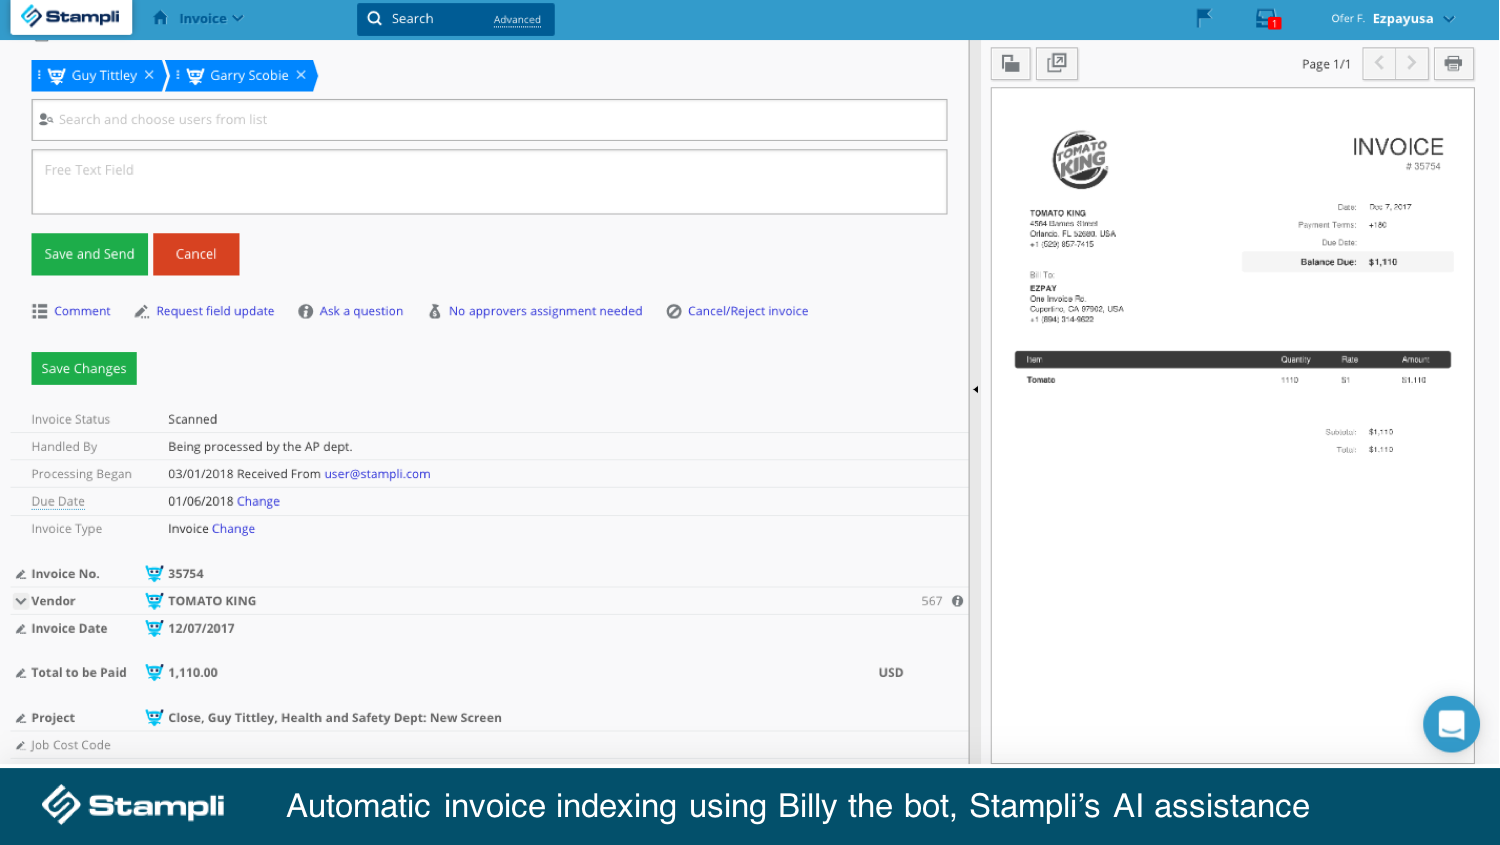 Stampli Demo - Billy the bot does the work for you!